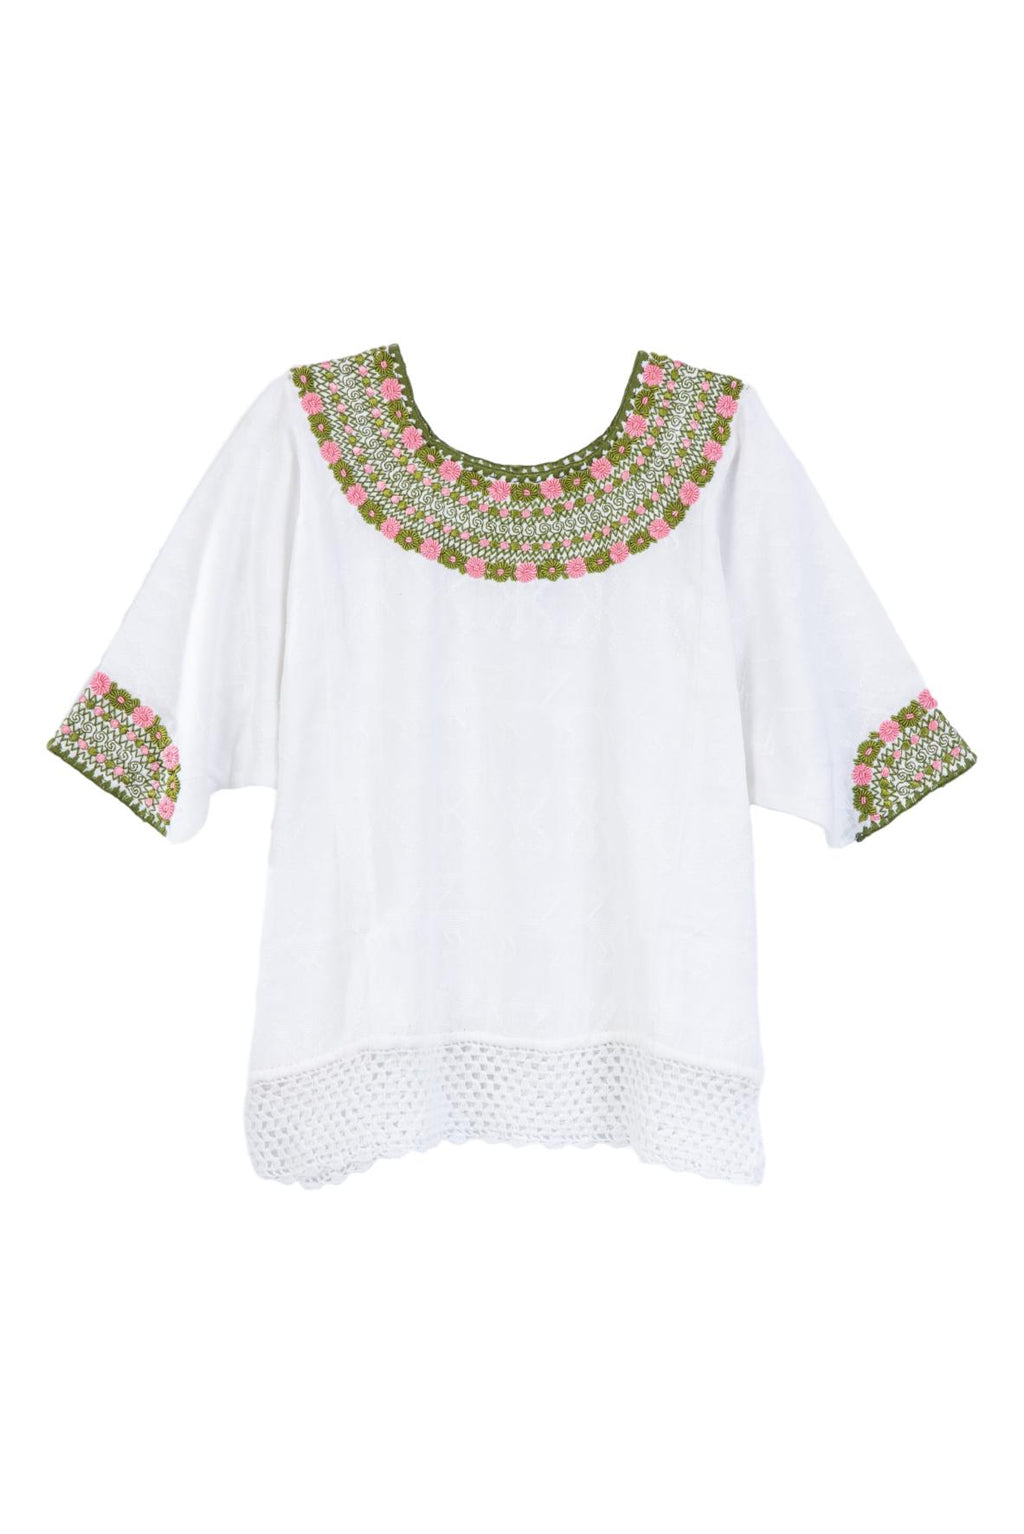 pink and green embroidered blouse with crochet